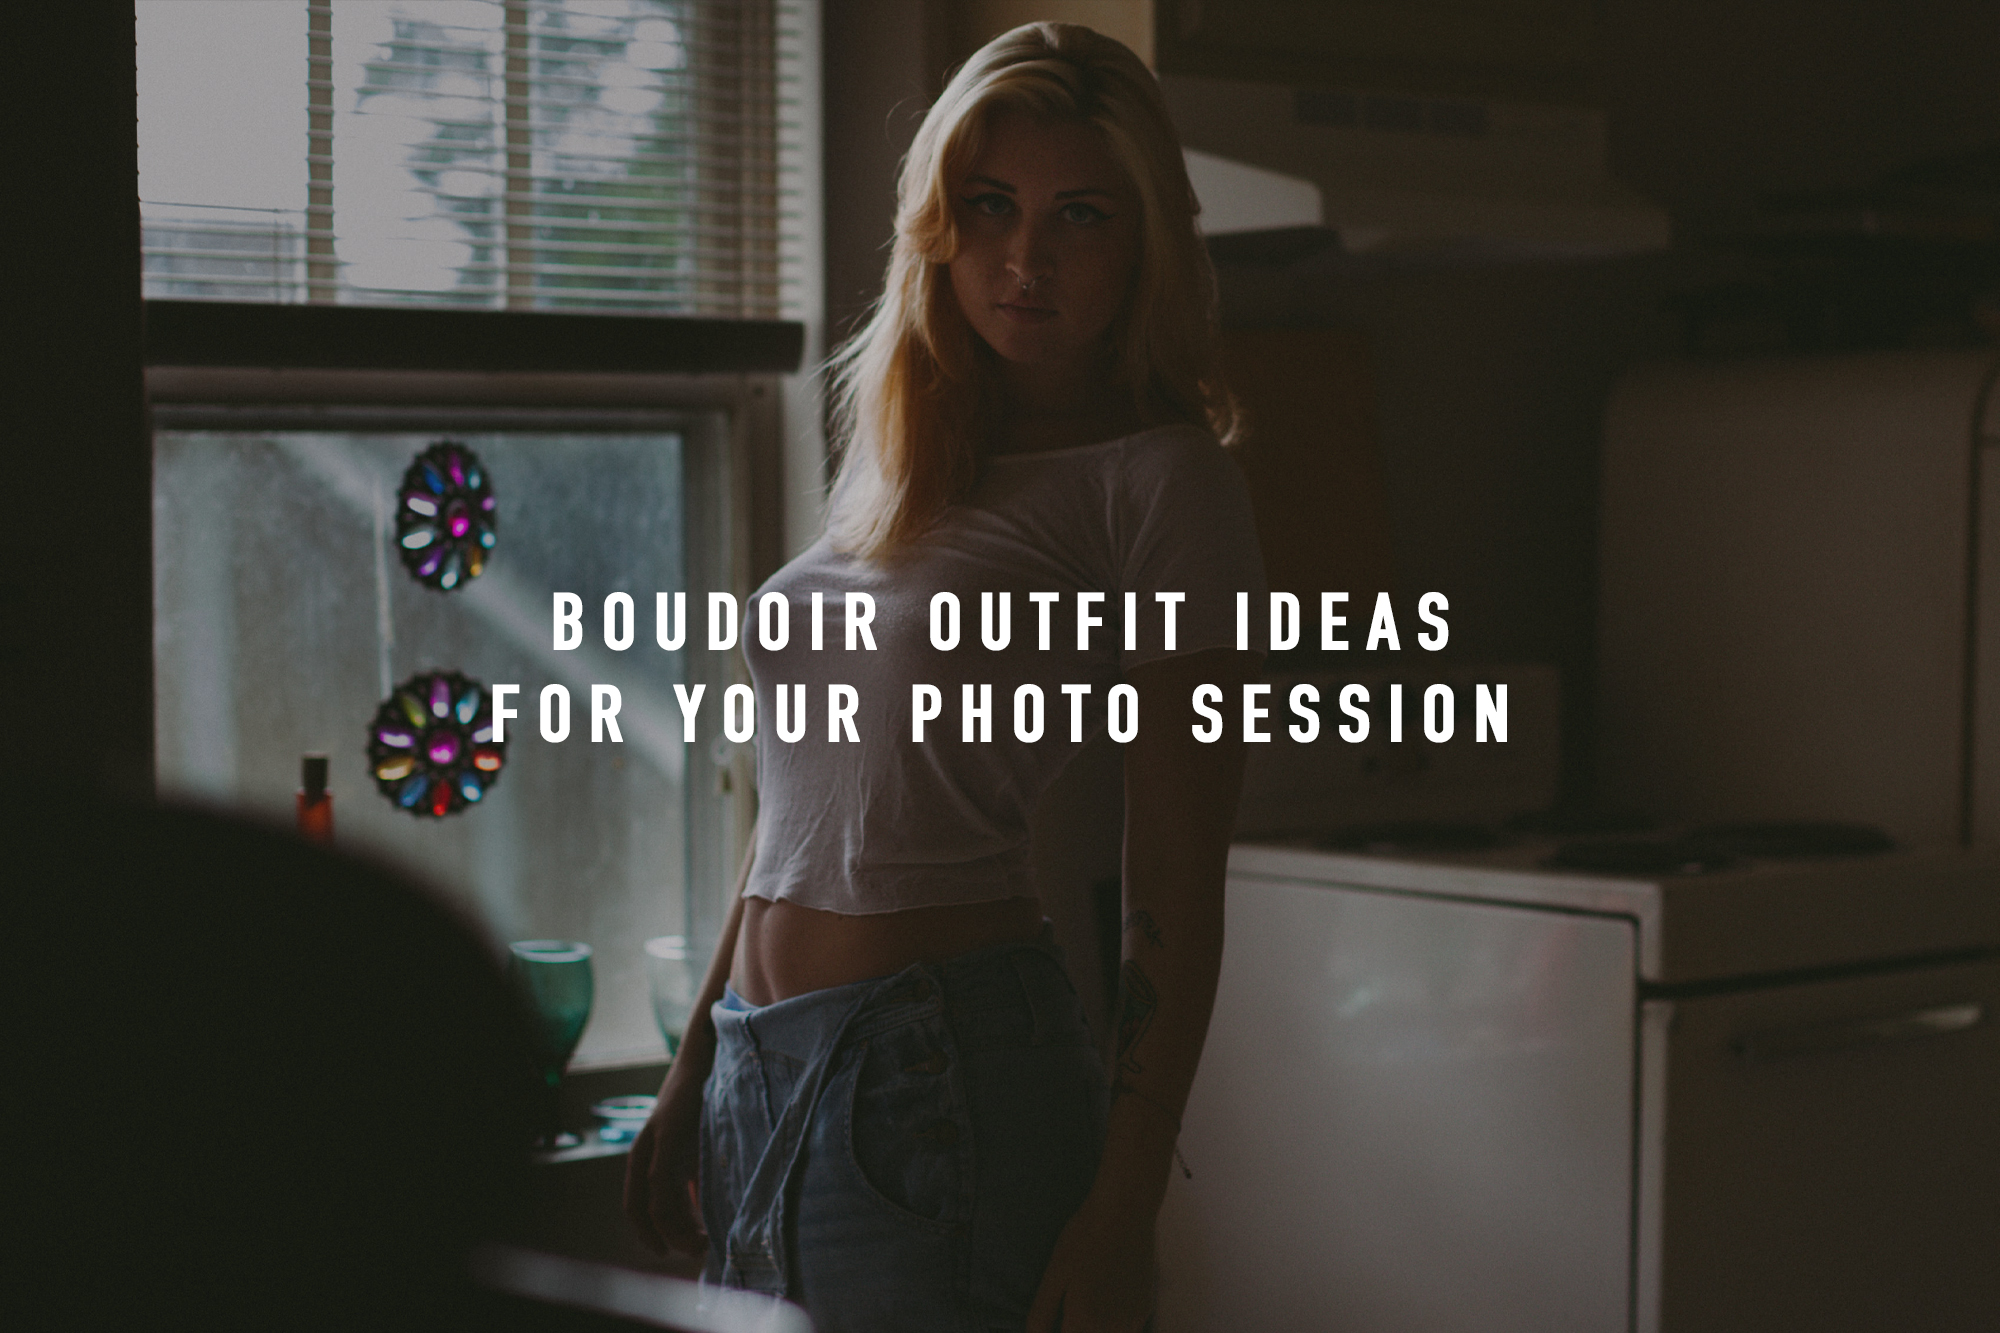 BOUDOIR OUTFIT IDEAS FOR YOUR PHOTO SESSION